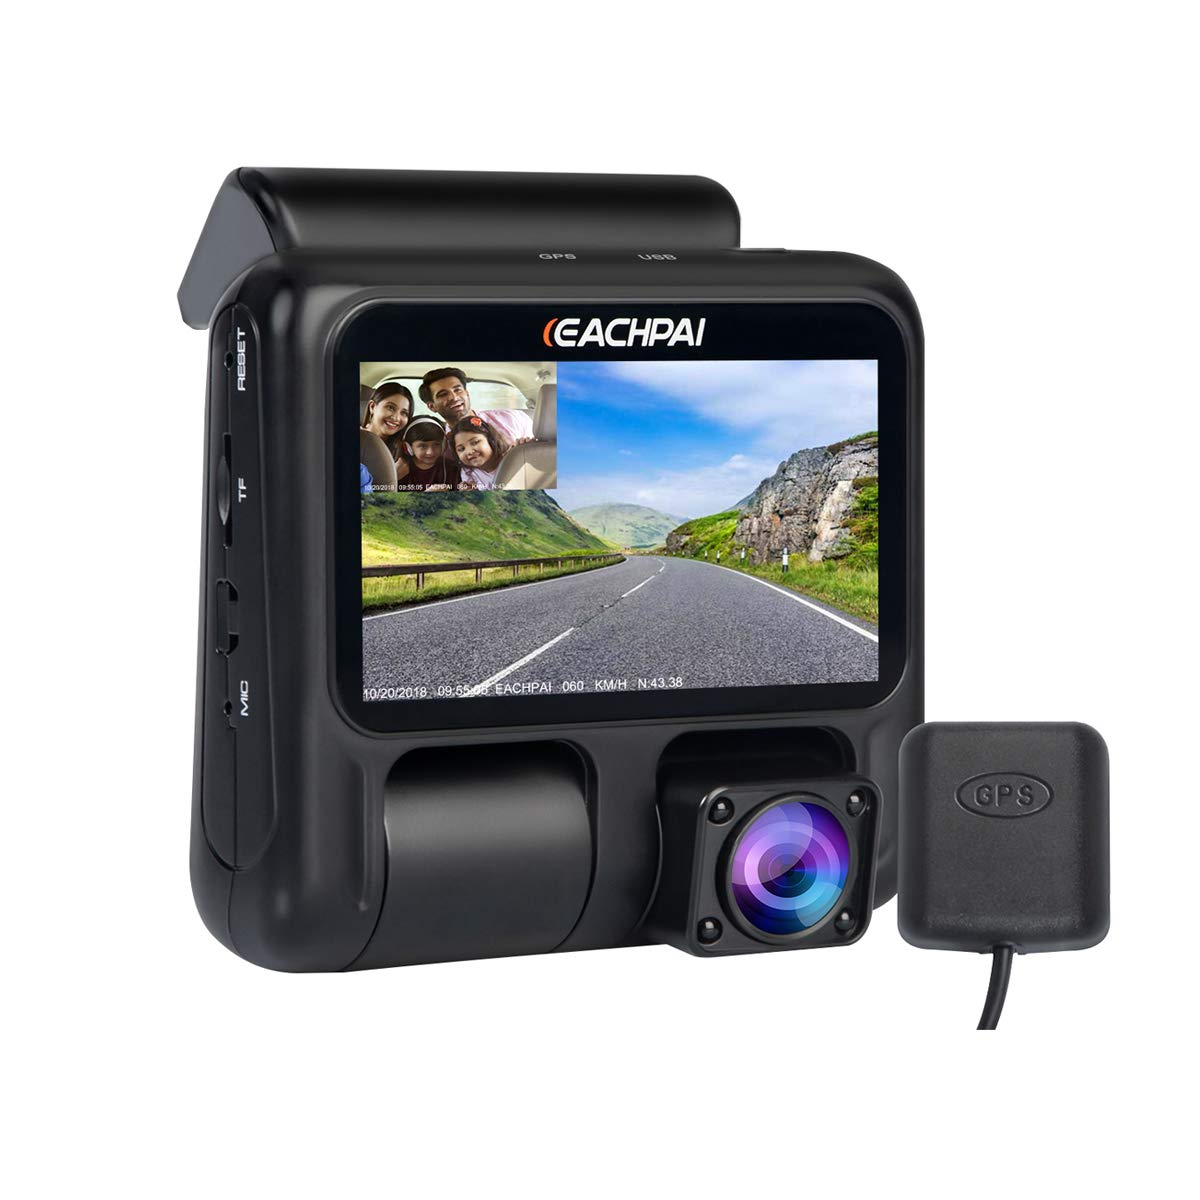 Dual Dash Cam,EACHPAI X100 IR Night Vision Car Dash Camera FHD 1080P Front and Rear Dashcam for Cars//Truck//Taxi//Uber//Lyft Dashboard with Sony Sensor,Wide Angle,Loop Record,GPS Park Monitor,32G Card